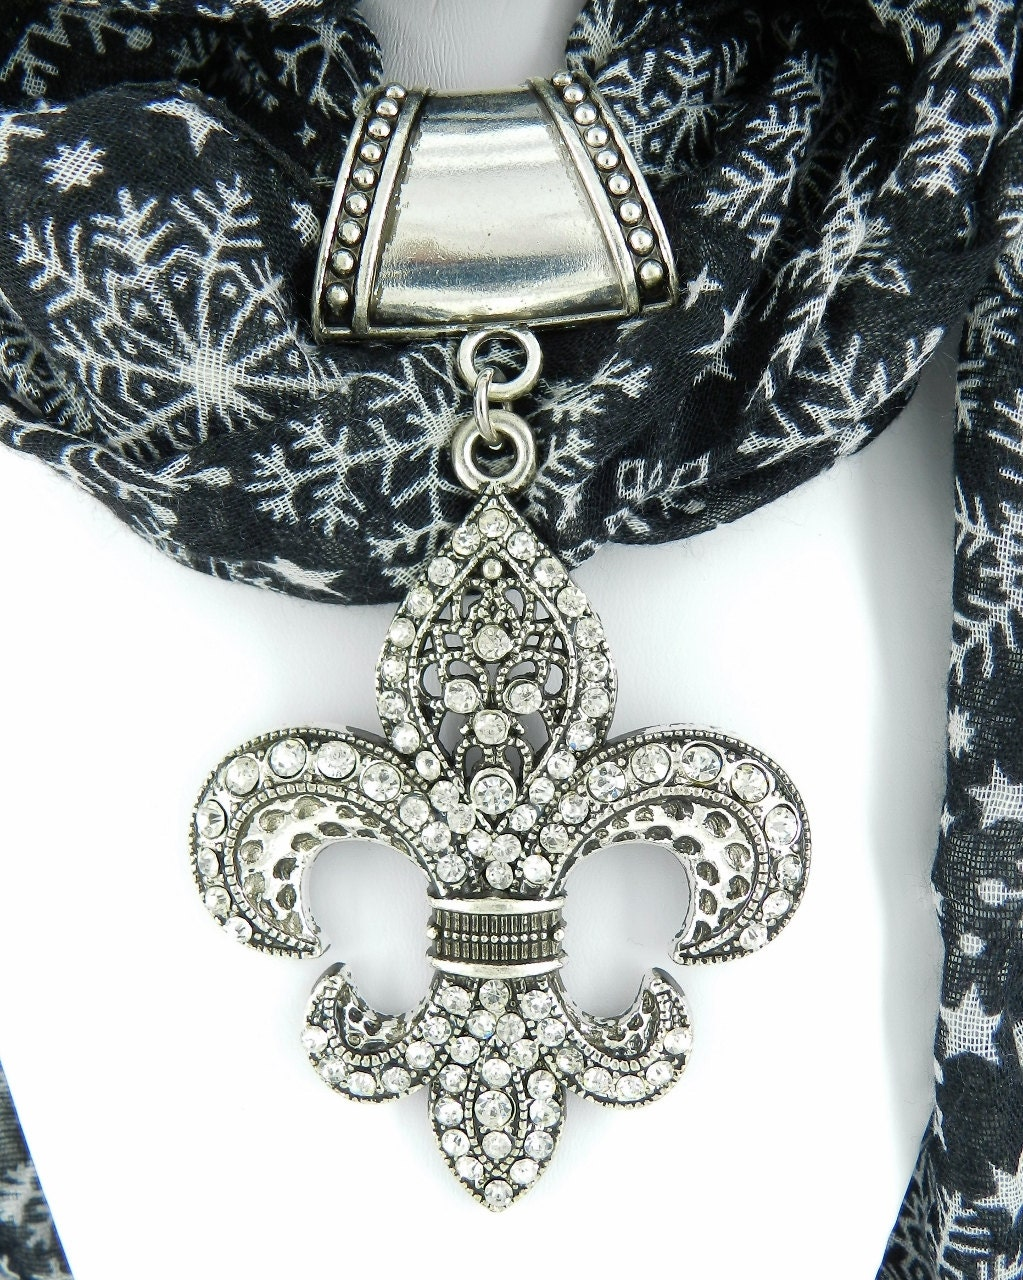 Fleur,de,Lis,Scarf,Jewelry,~,Crystal,Rhinestone,Pendant,Accessory~,Charm,Slide,scarf_charm,scarf_accessory,scarf_pendant,scarf_jewelry,scarf_slide,scarf_bling,fleur_de_lis,Fleur-de-Lis,Saints,Art_Nouveau,crystal_fleur_de_lis,rhinestone_pendant,large fleur de lis pendant,antique silver alloy bail